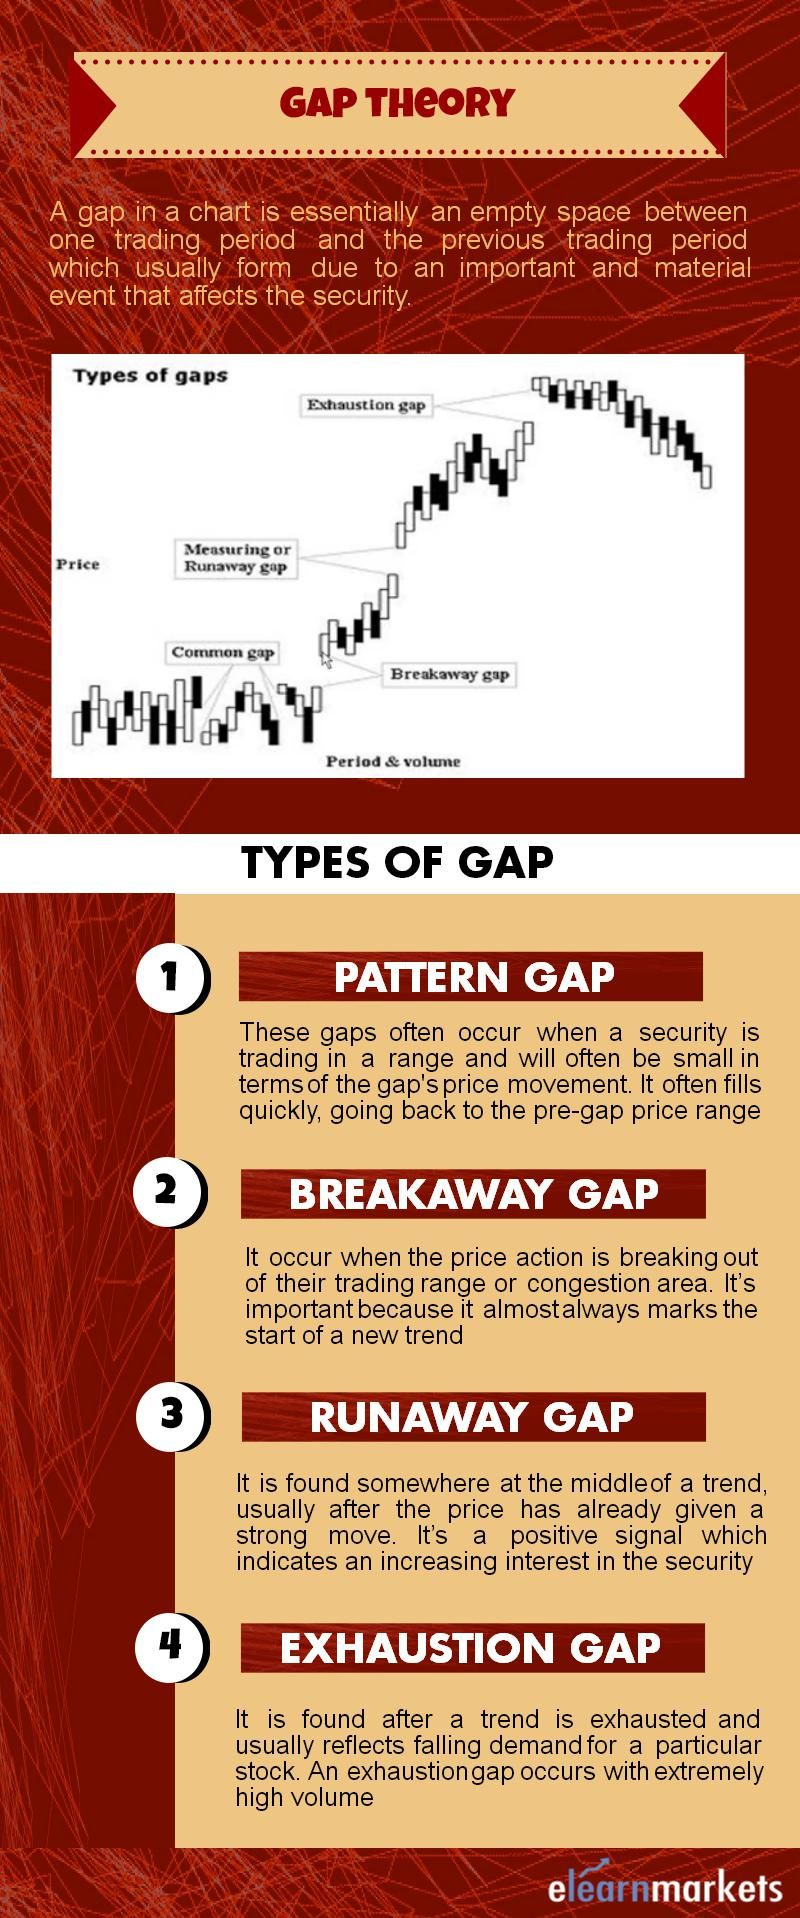 This Pin Discusses About Gap Theory And The Types Of Gap Often